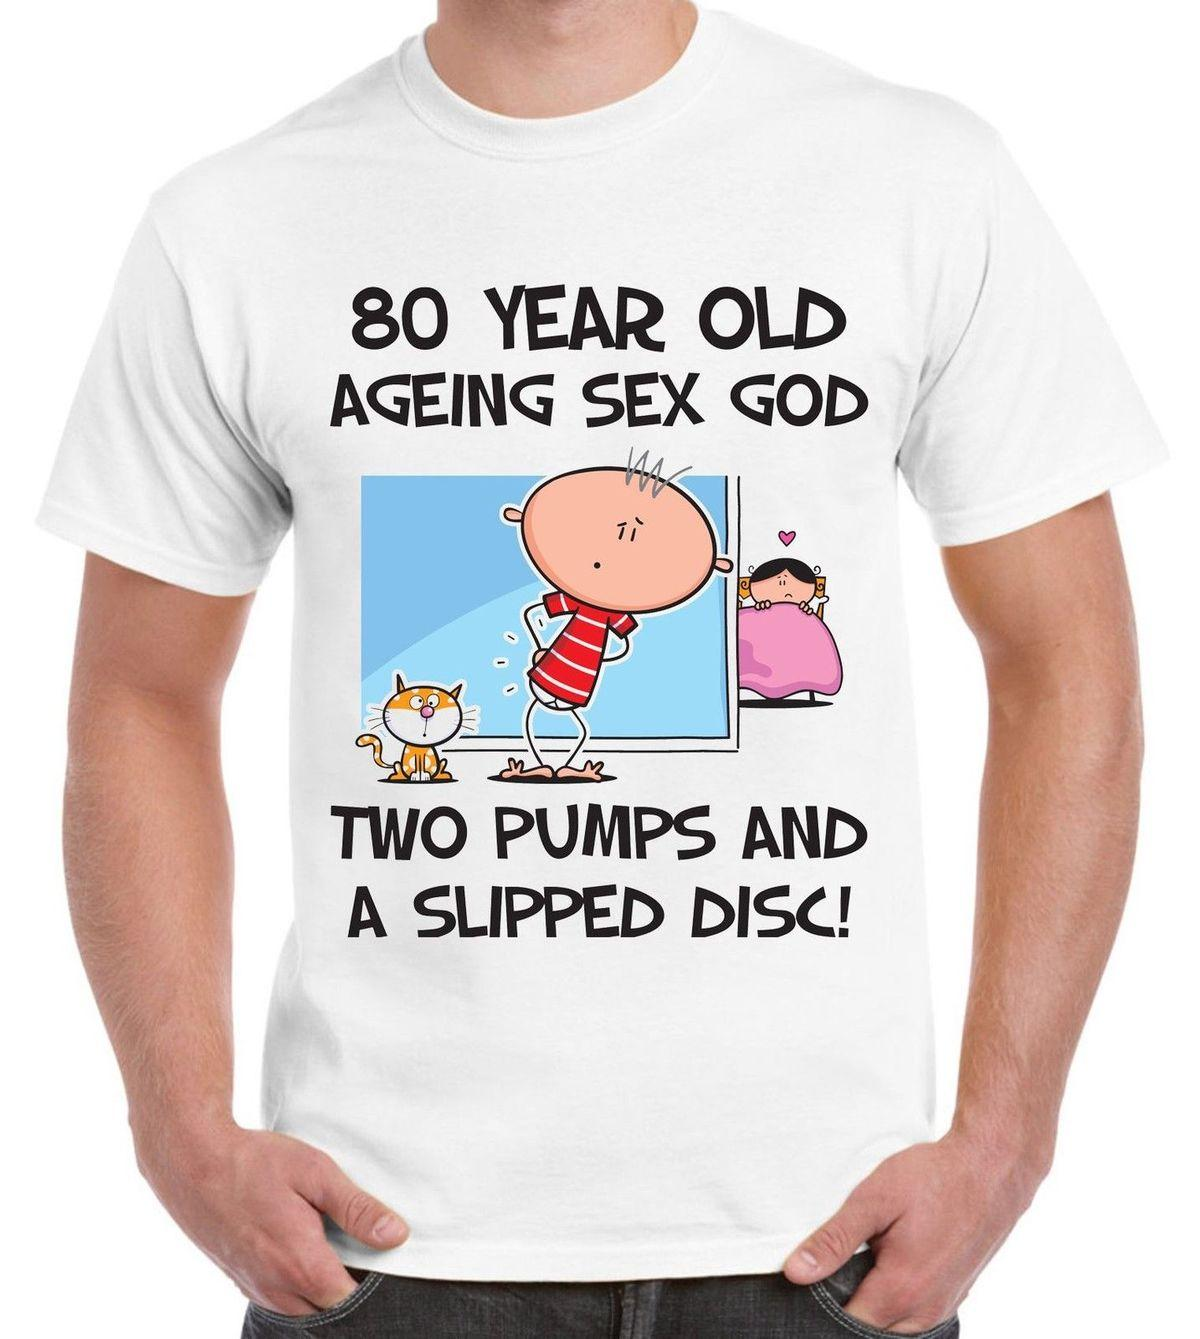 Ageing Sex God 80th Birthday Present MenS T Shirt Funny Gift Slogan 100 Cotton Tee For Men Shirts And